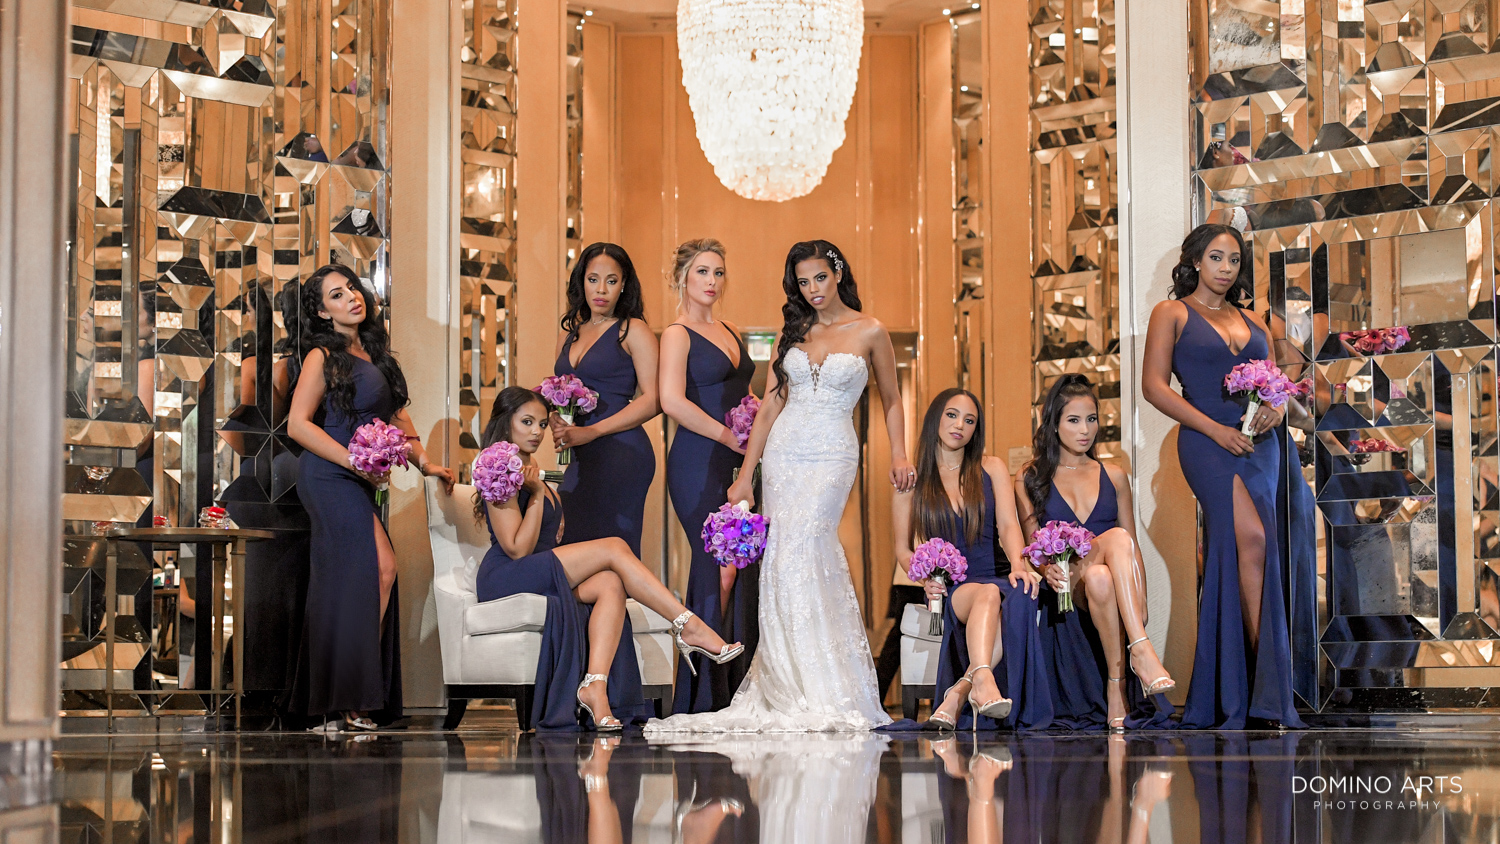 Fashion wedding picture of wedding party at The St. Regis Bal Harbour